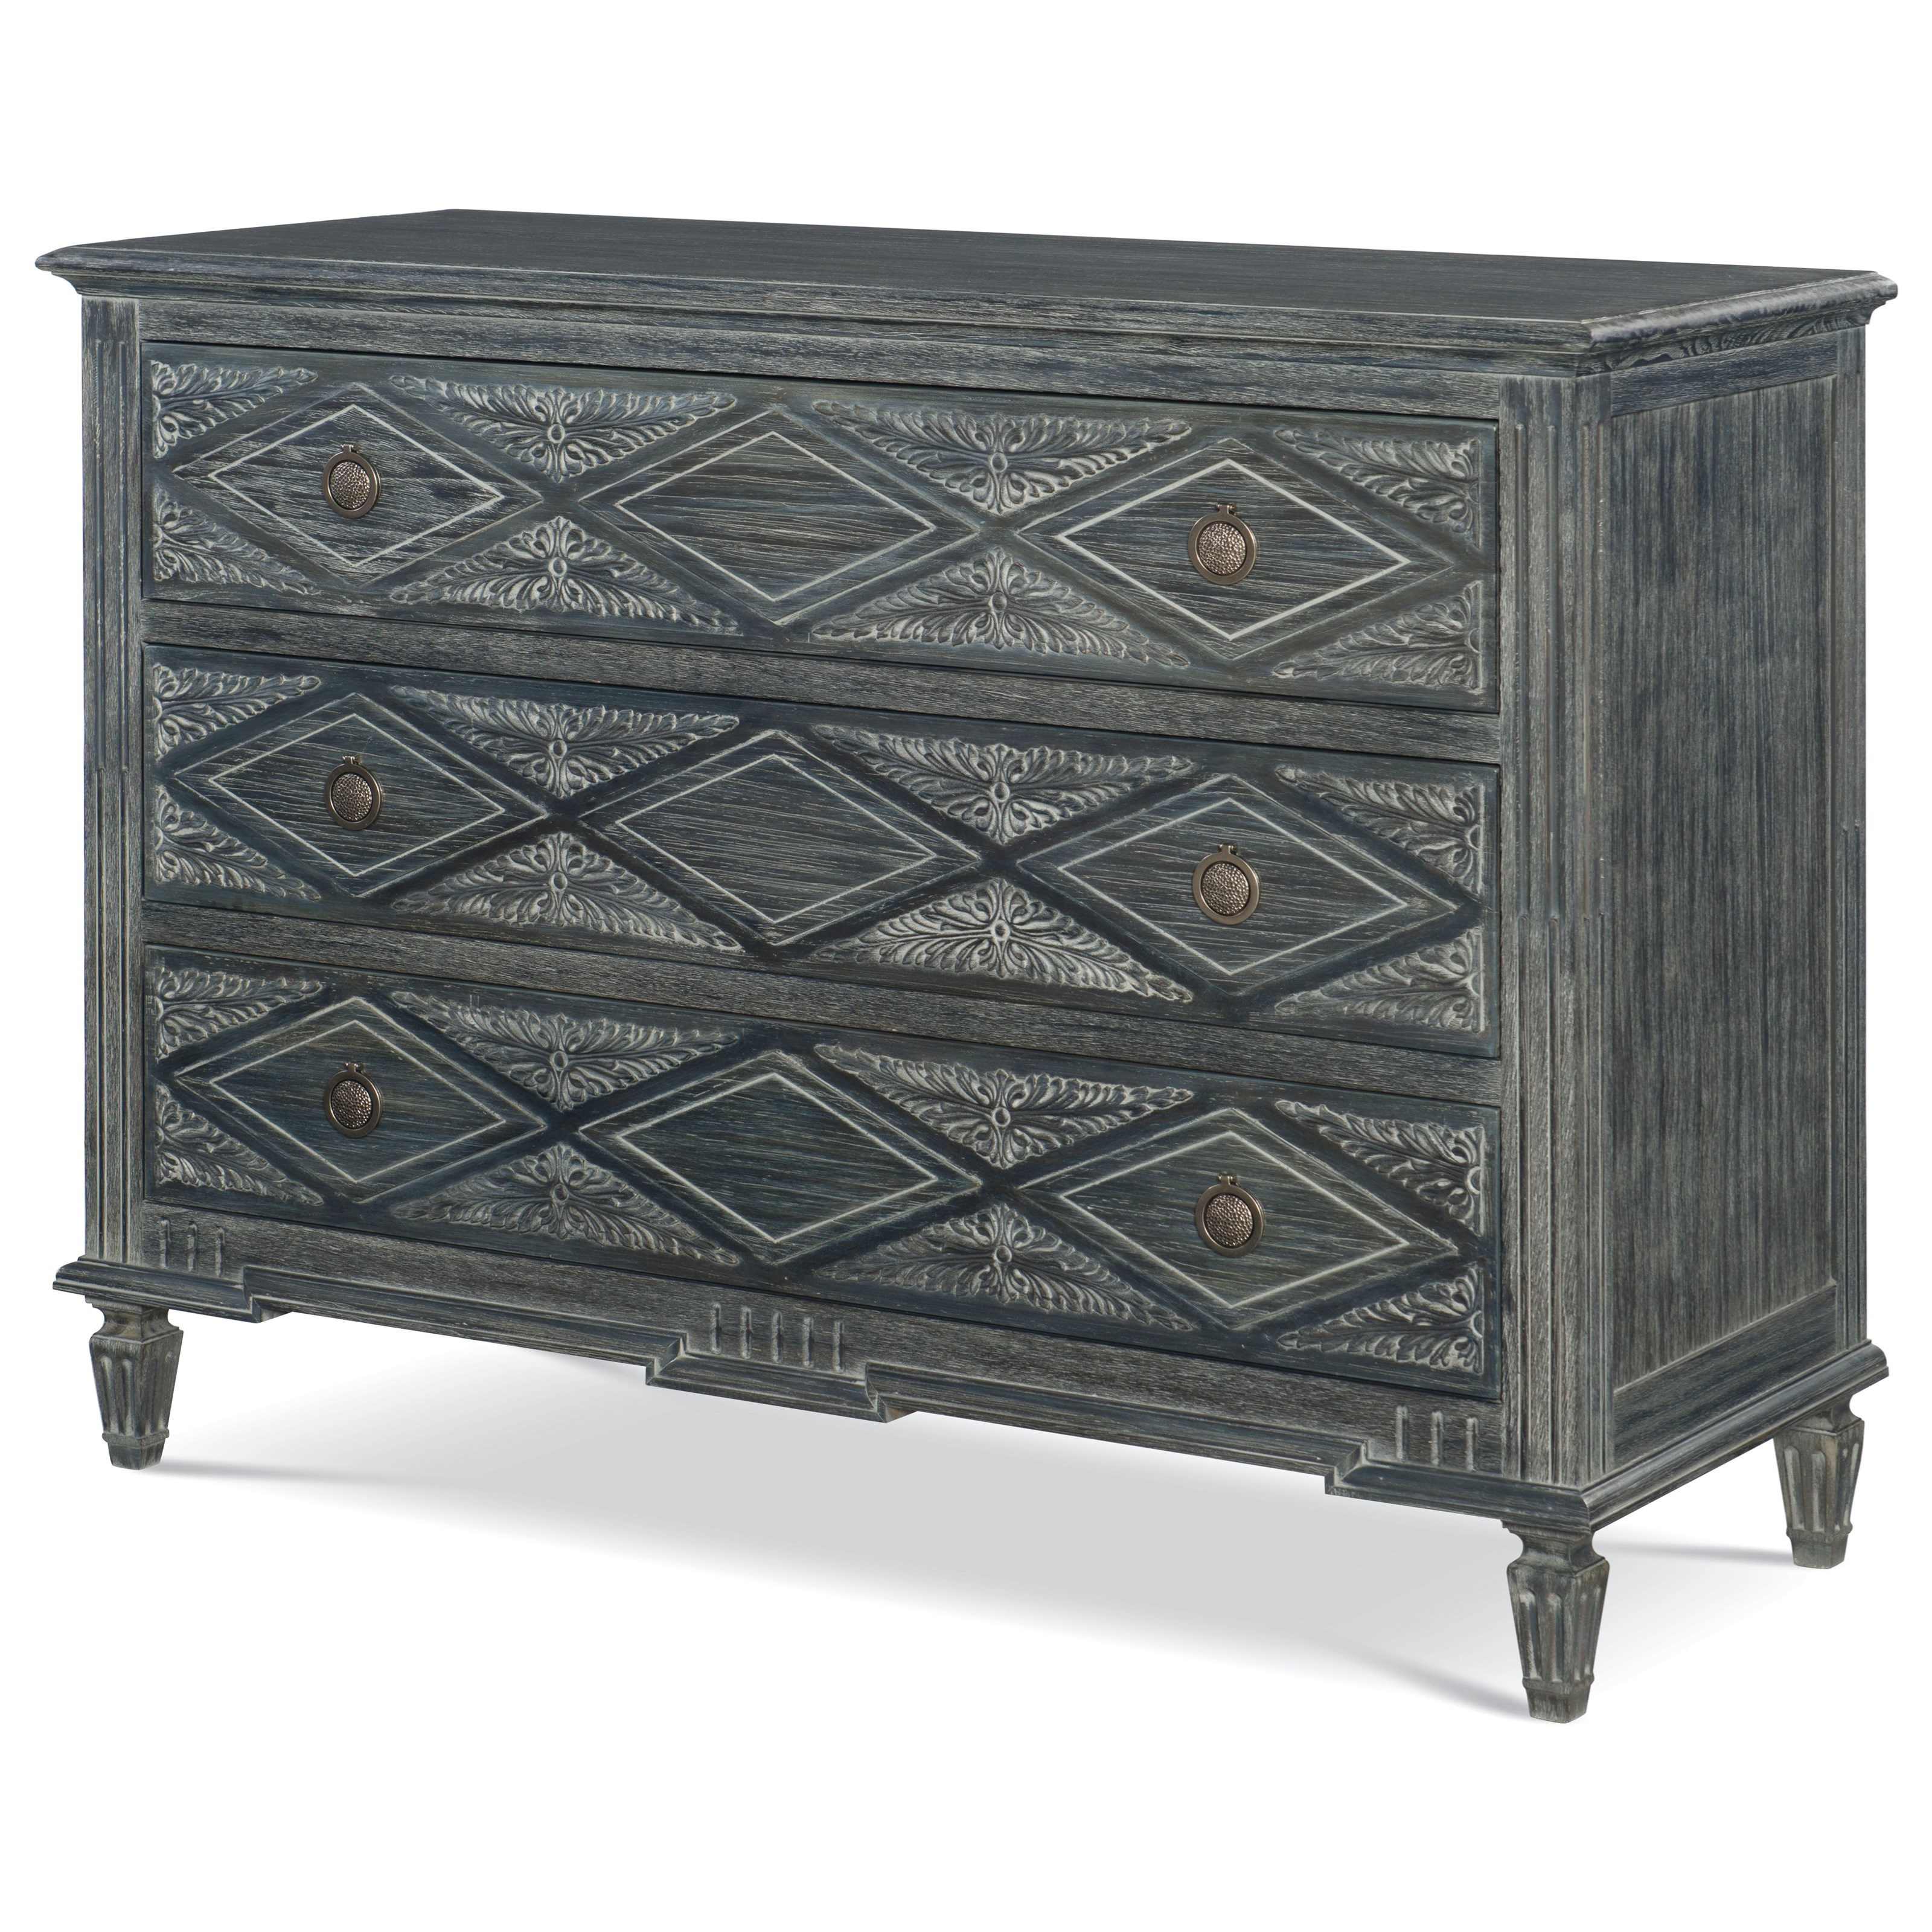 veranda alton colfax three drawer chest belfort signature furniture products fine design color accent night table luxury lamps west elm coffee desk wood and iron side half circle